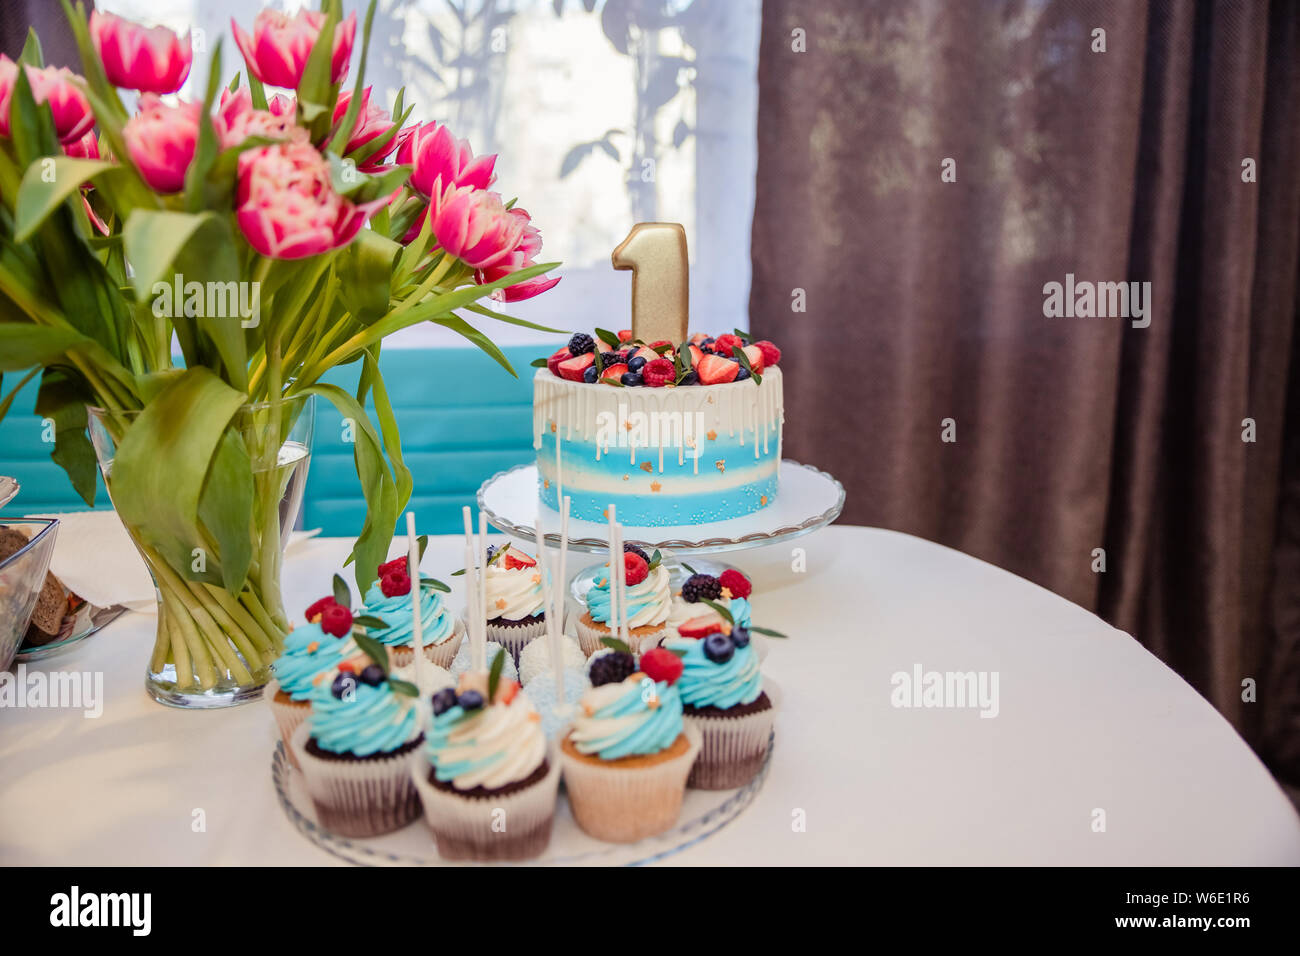 Candy bar decorated with sweets, cupcakes and cake for 17st